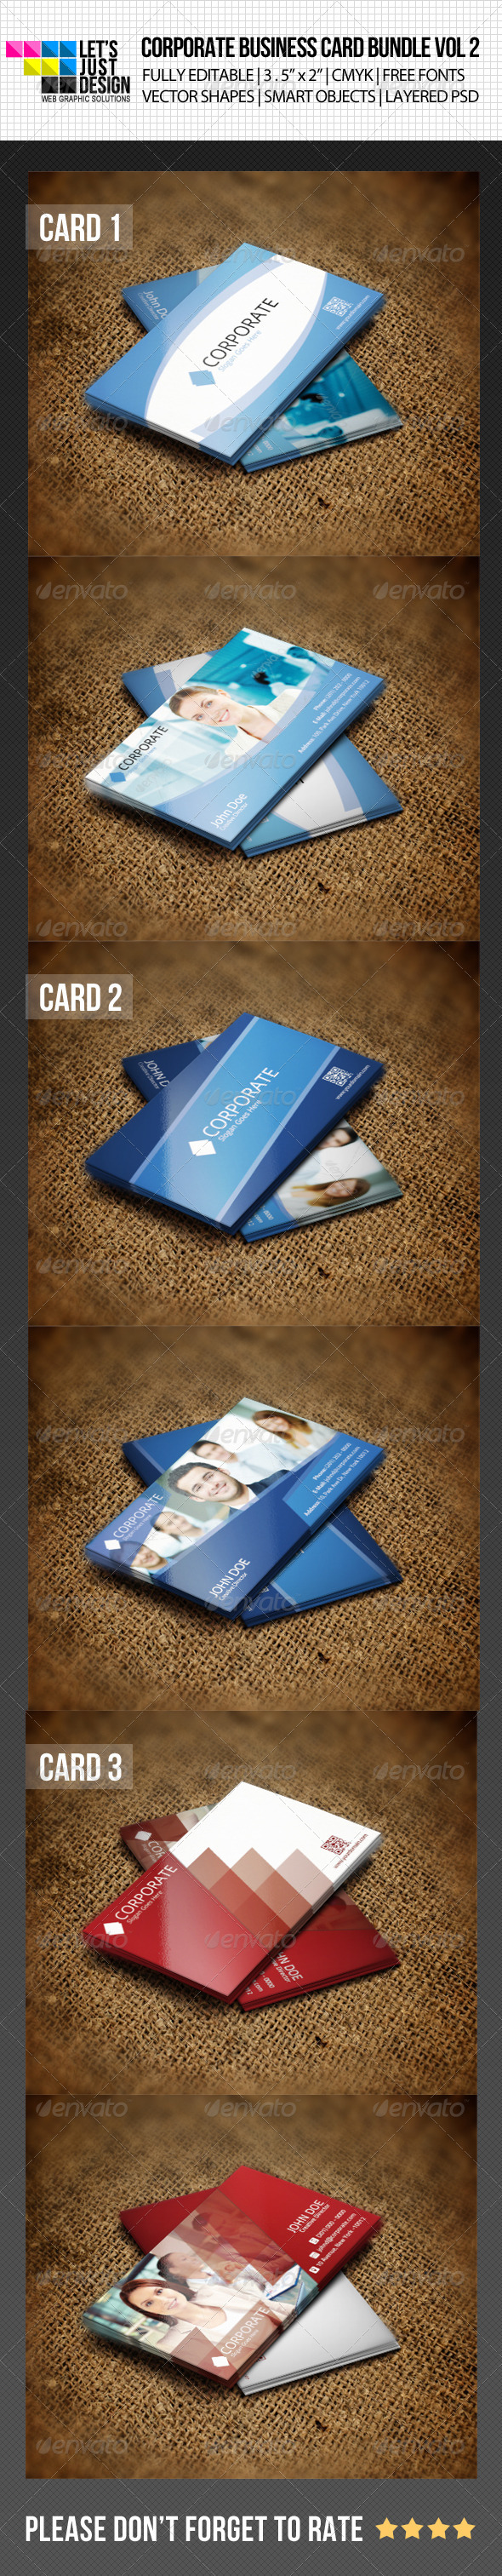 GraphicRiver 3 IN 1 Corporate Business Card Bundle Vol 2 5125601